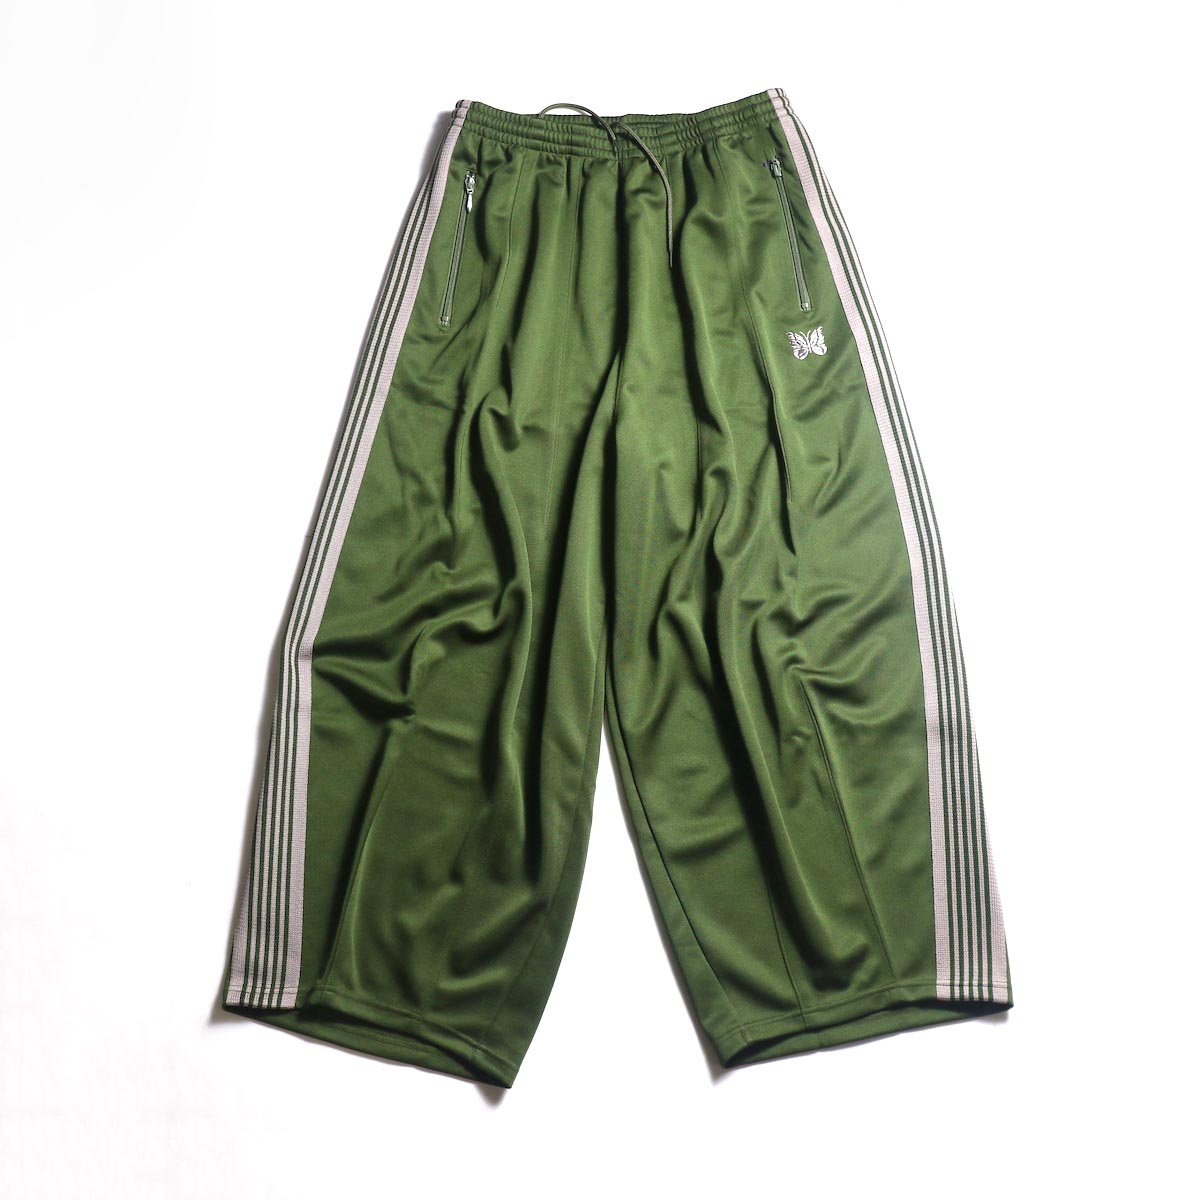 Needles / H.D. TRACK PANT - POLY SMOOTH (Olive)